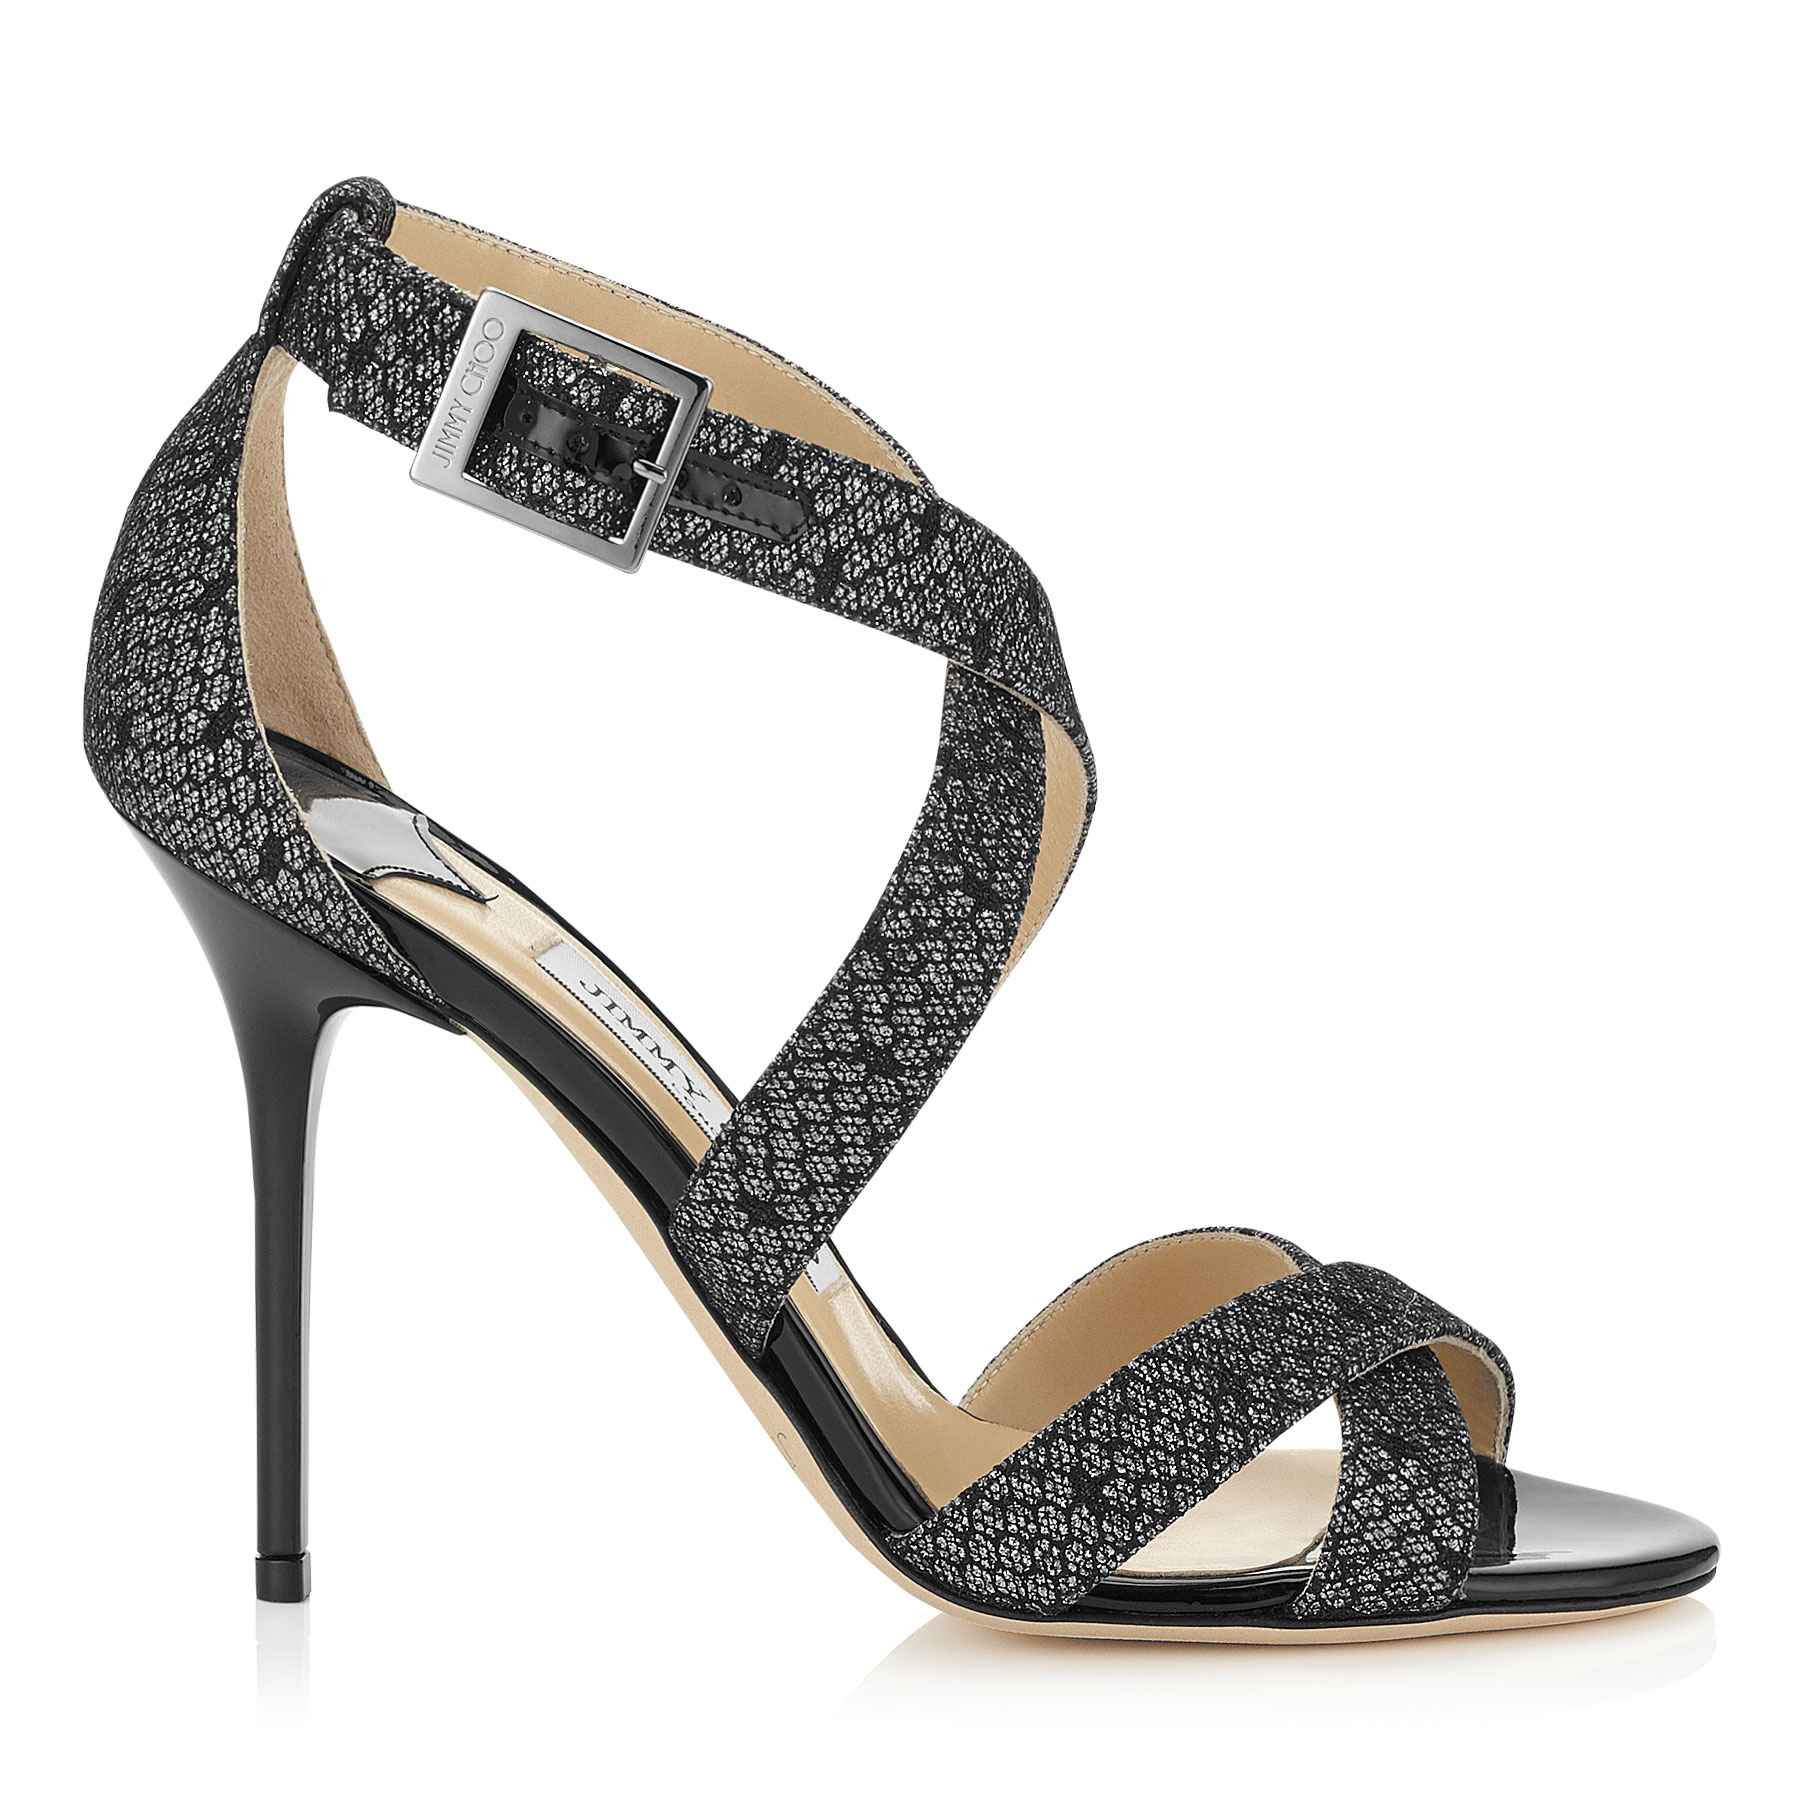 LOTTIE Black Dotted Lace on Anthracite Fine Glitter and Patent Sandals